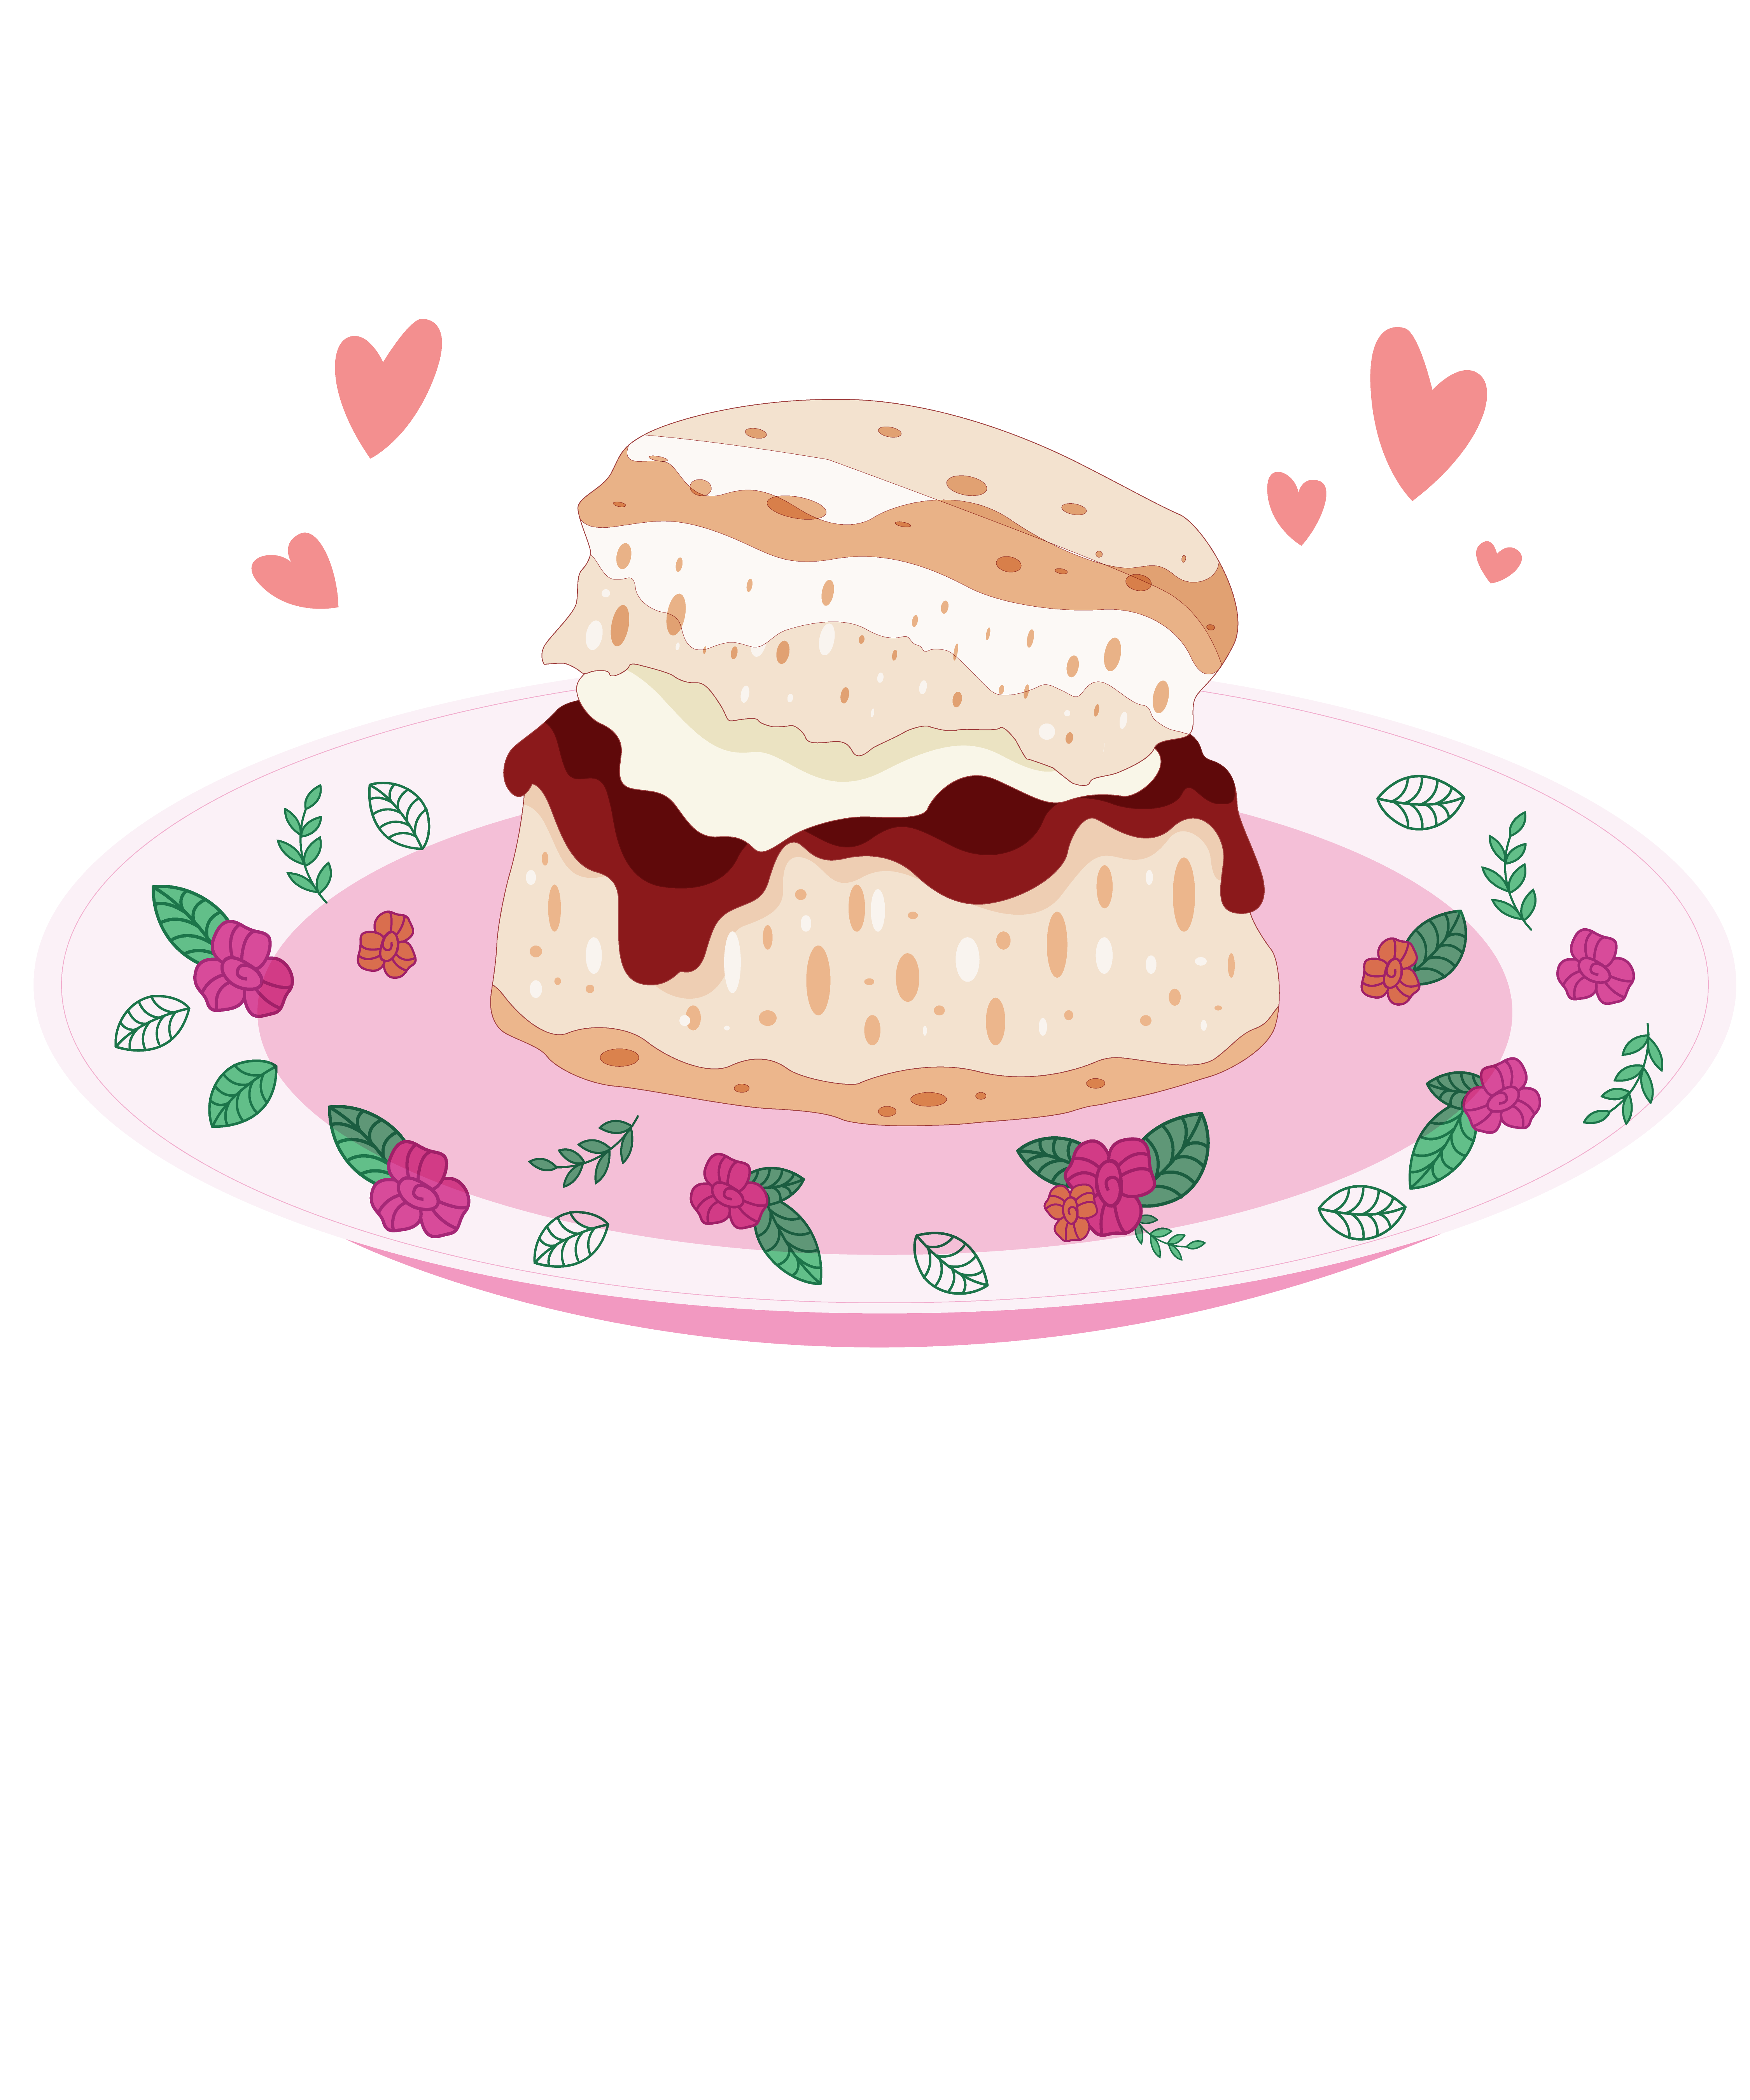 Clotted cream. The traditional scone served